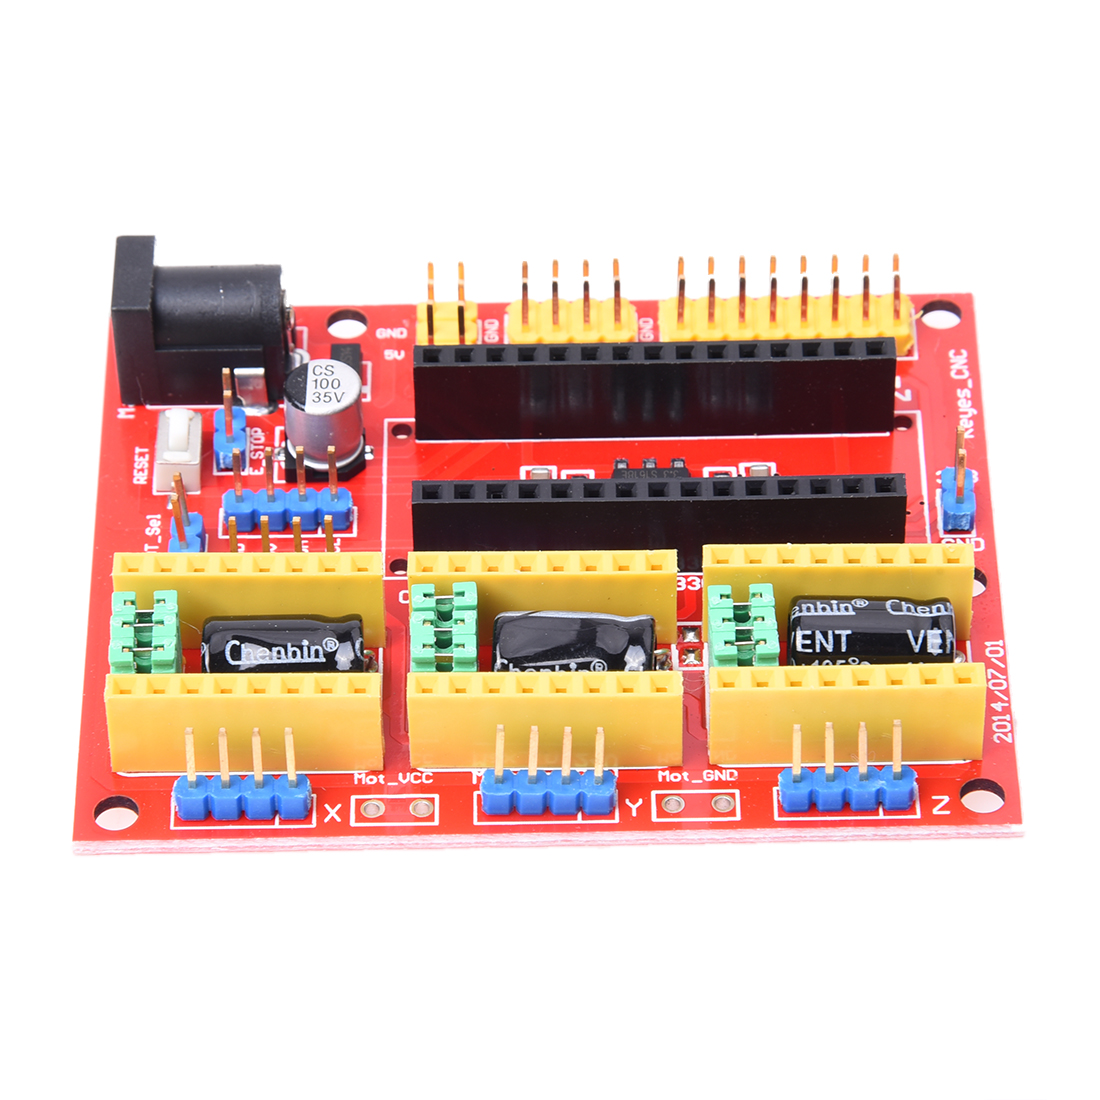 1 x Red CCL CNC V4 engraving machine expansion board For GRBL gardening tools potted flowers flower cultivation gadget spades and hoes for gardening vegetables